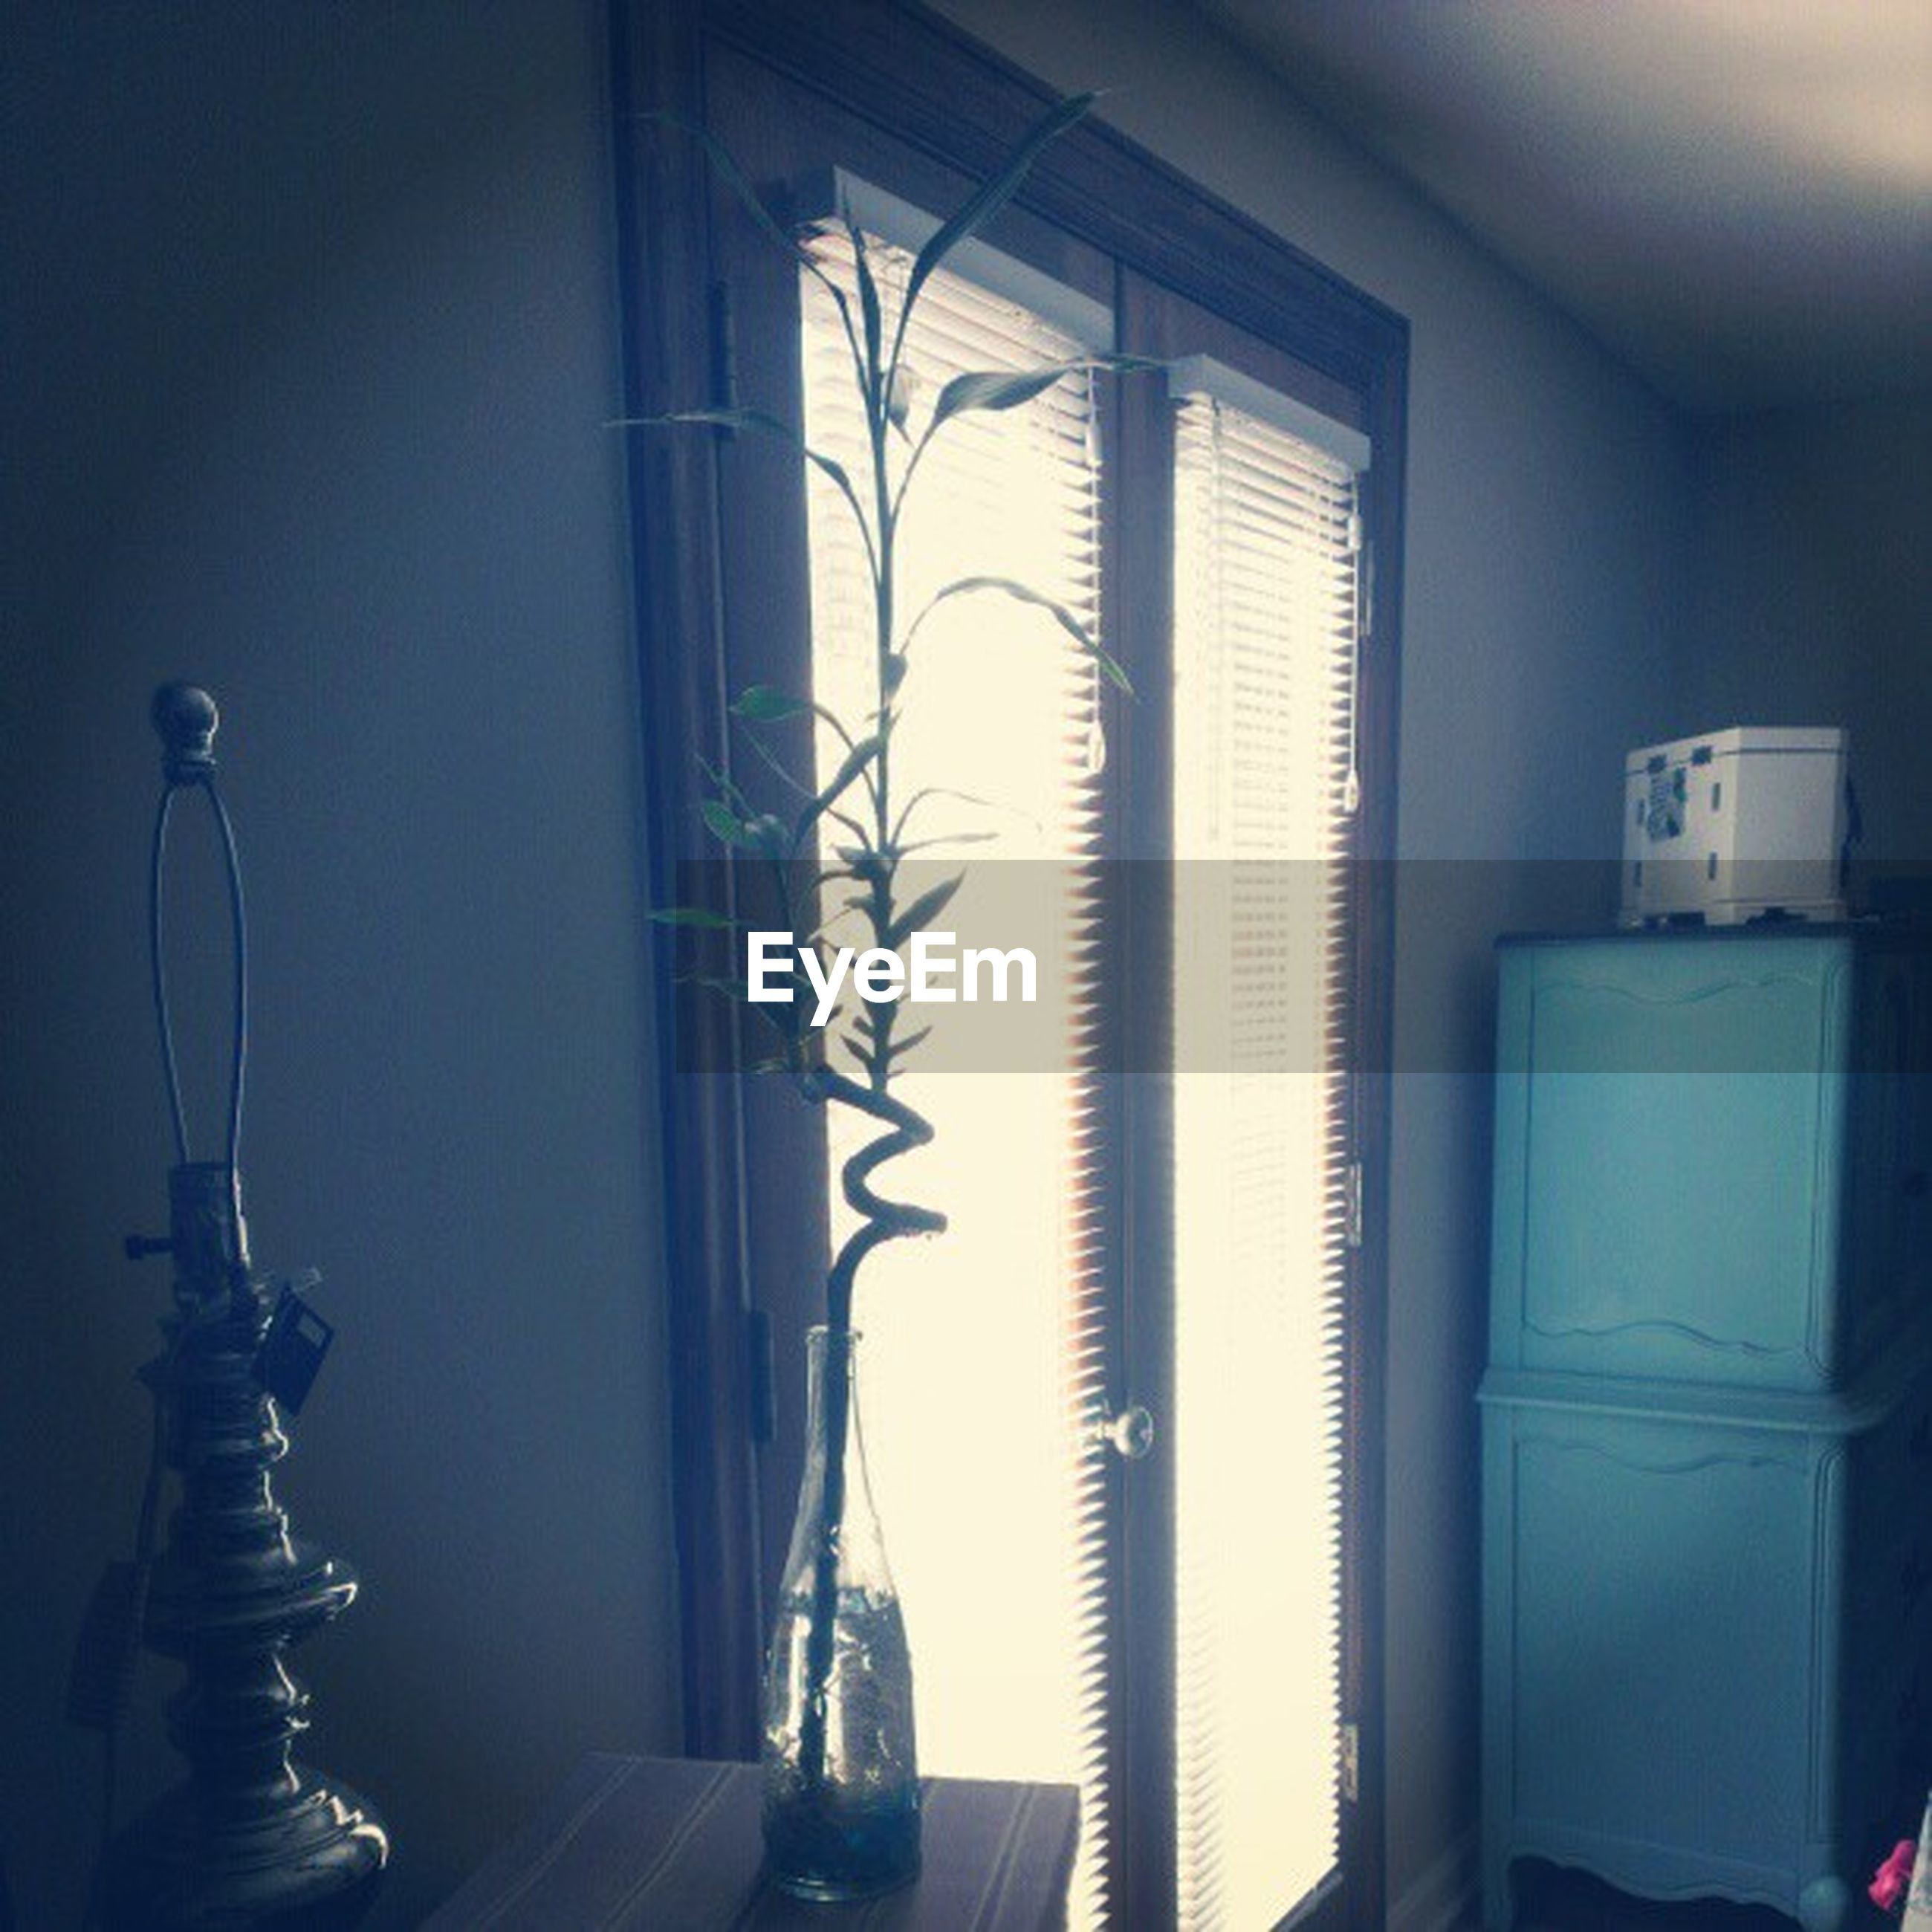 indoors, home interior, window, wall - building feature, door, domestic room, glass - material, wall, house, curtain, closed, absence, metal, no people, transparent, window sill, still life, empty, hanging, close-up